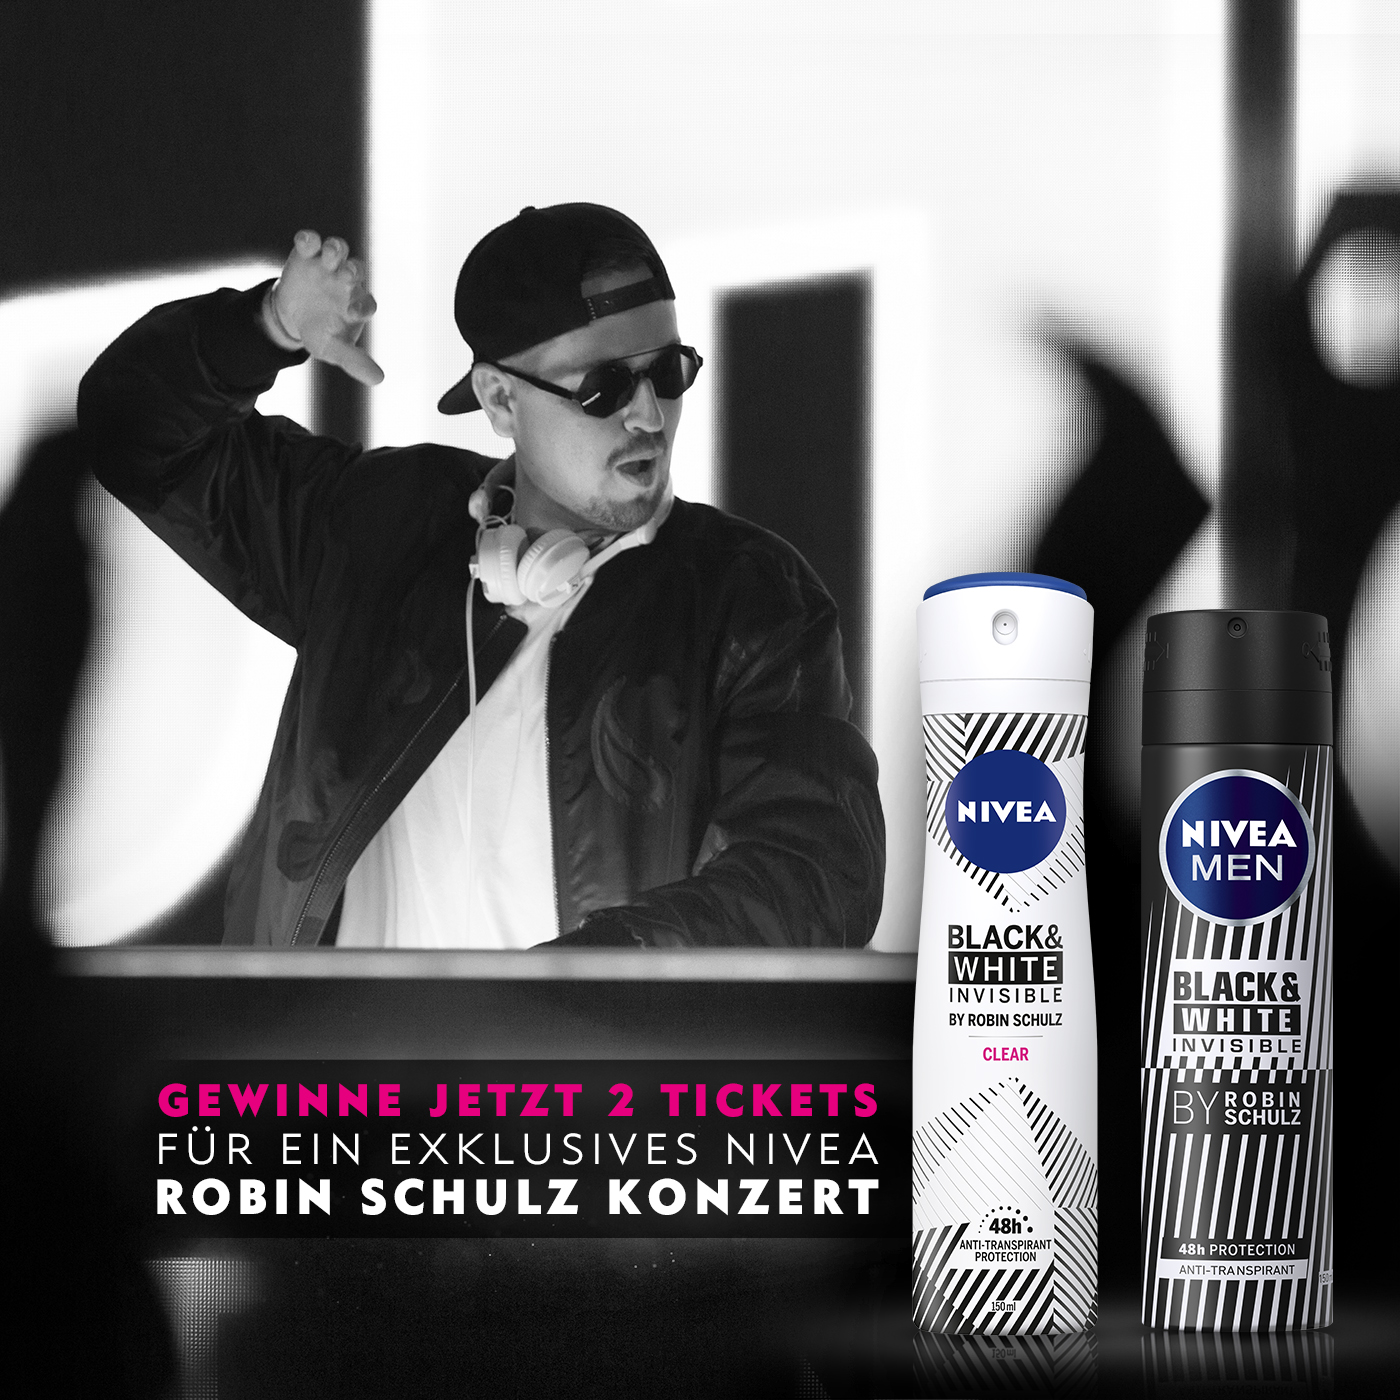 Two NIVEA black and white deodorant cans in the background Robin Schulz playing music